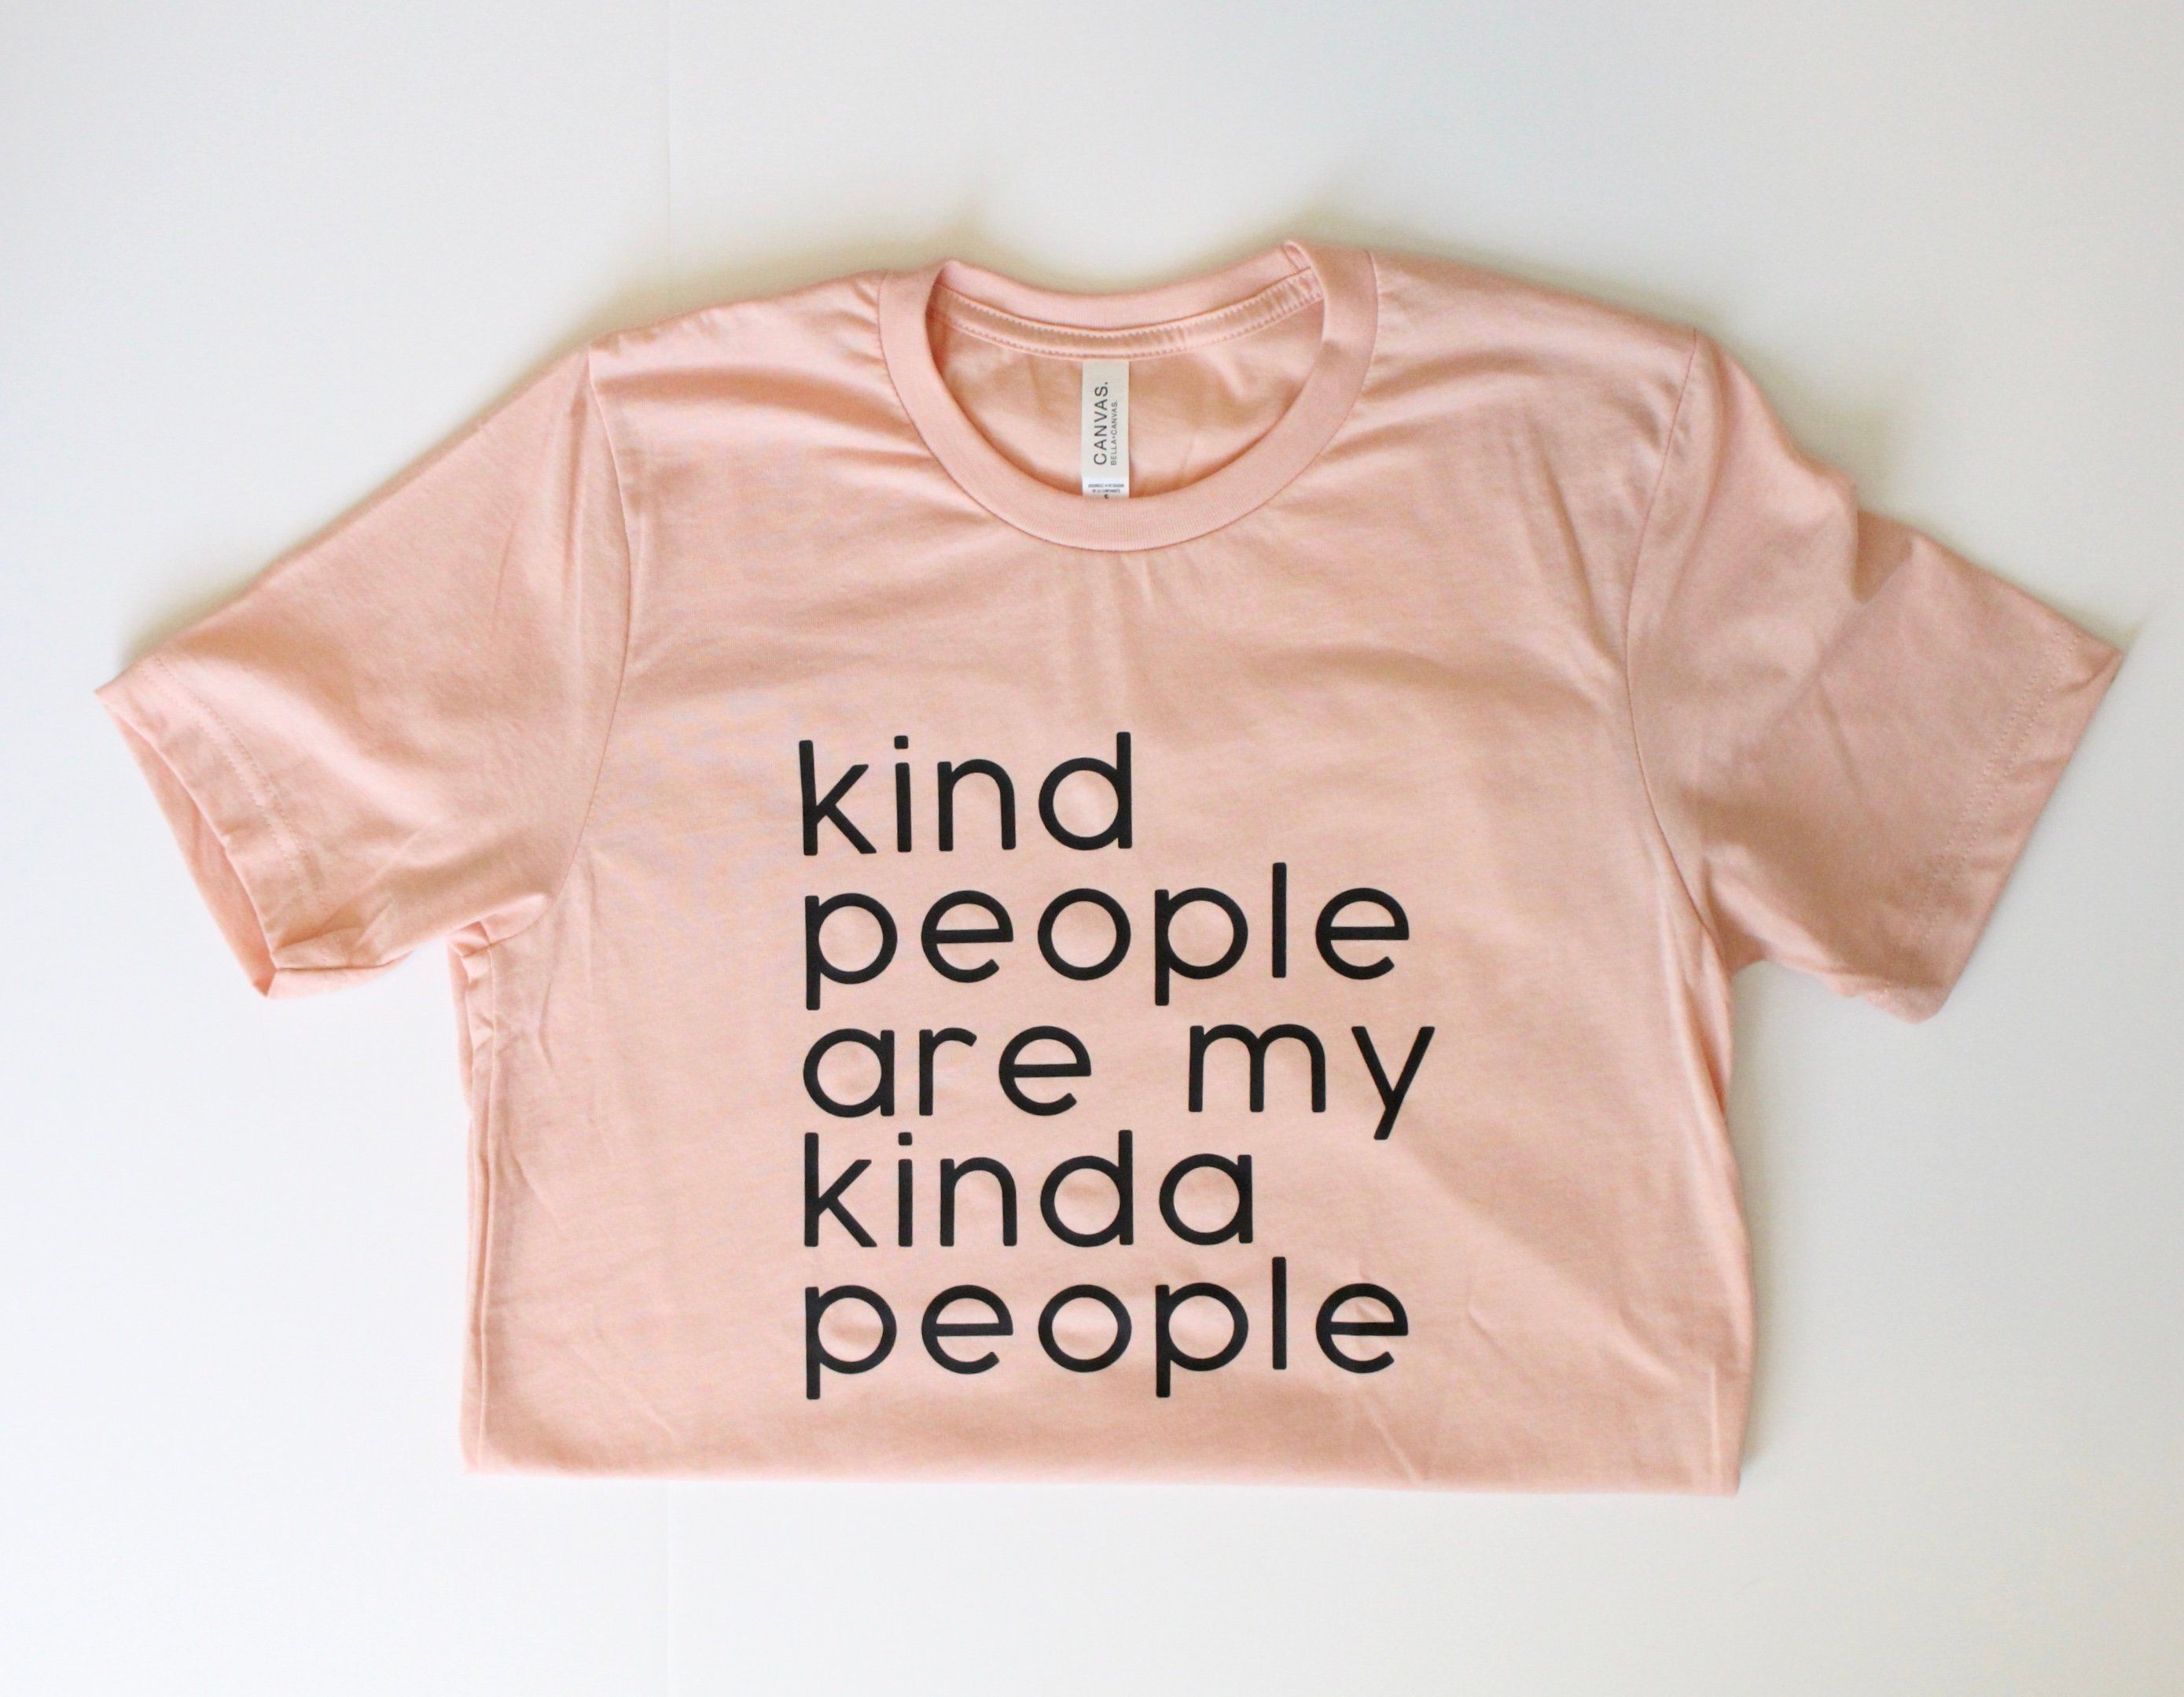 Kindness Tee Kind People Are My Kinda People Kindness Shirt Be Kind Kindness Is Contagious Kind Shirt Kindness Quotes Kindness Shirts Kindness Tee Shirts